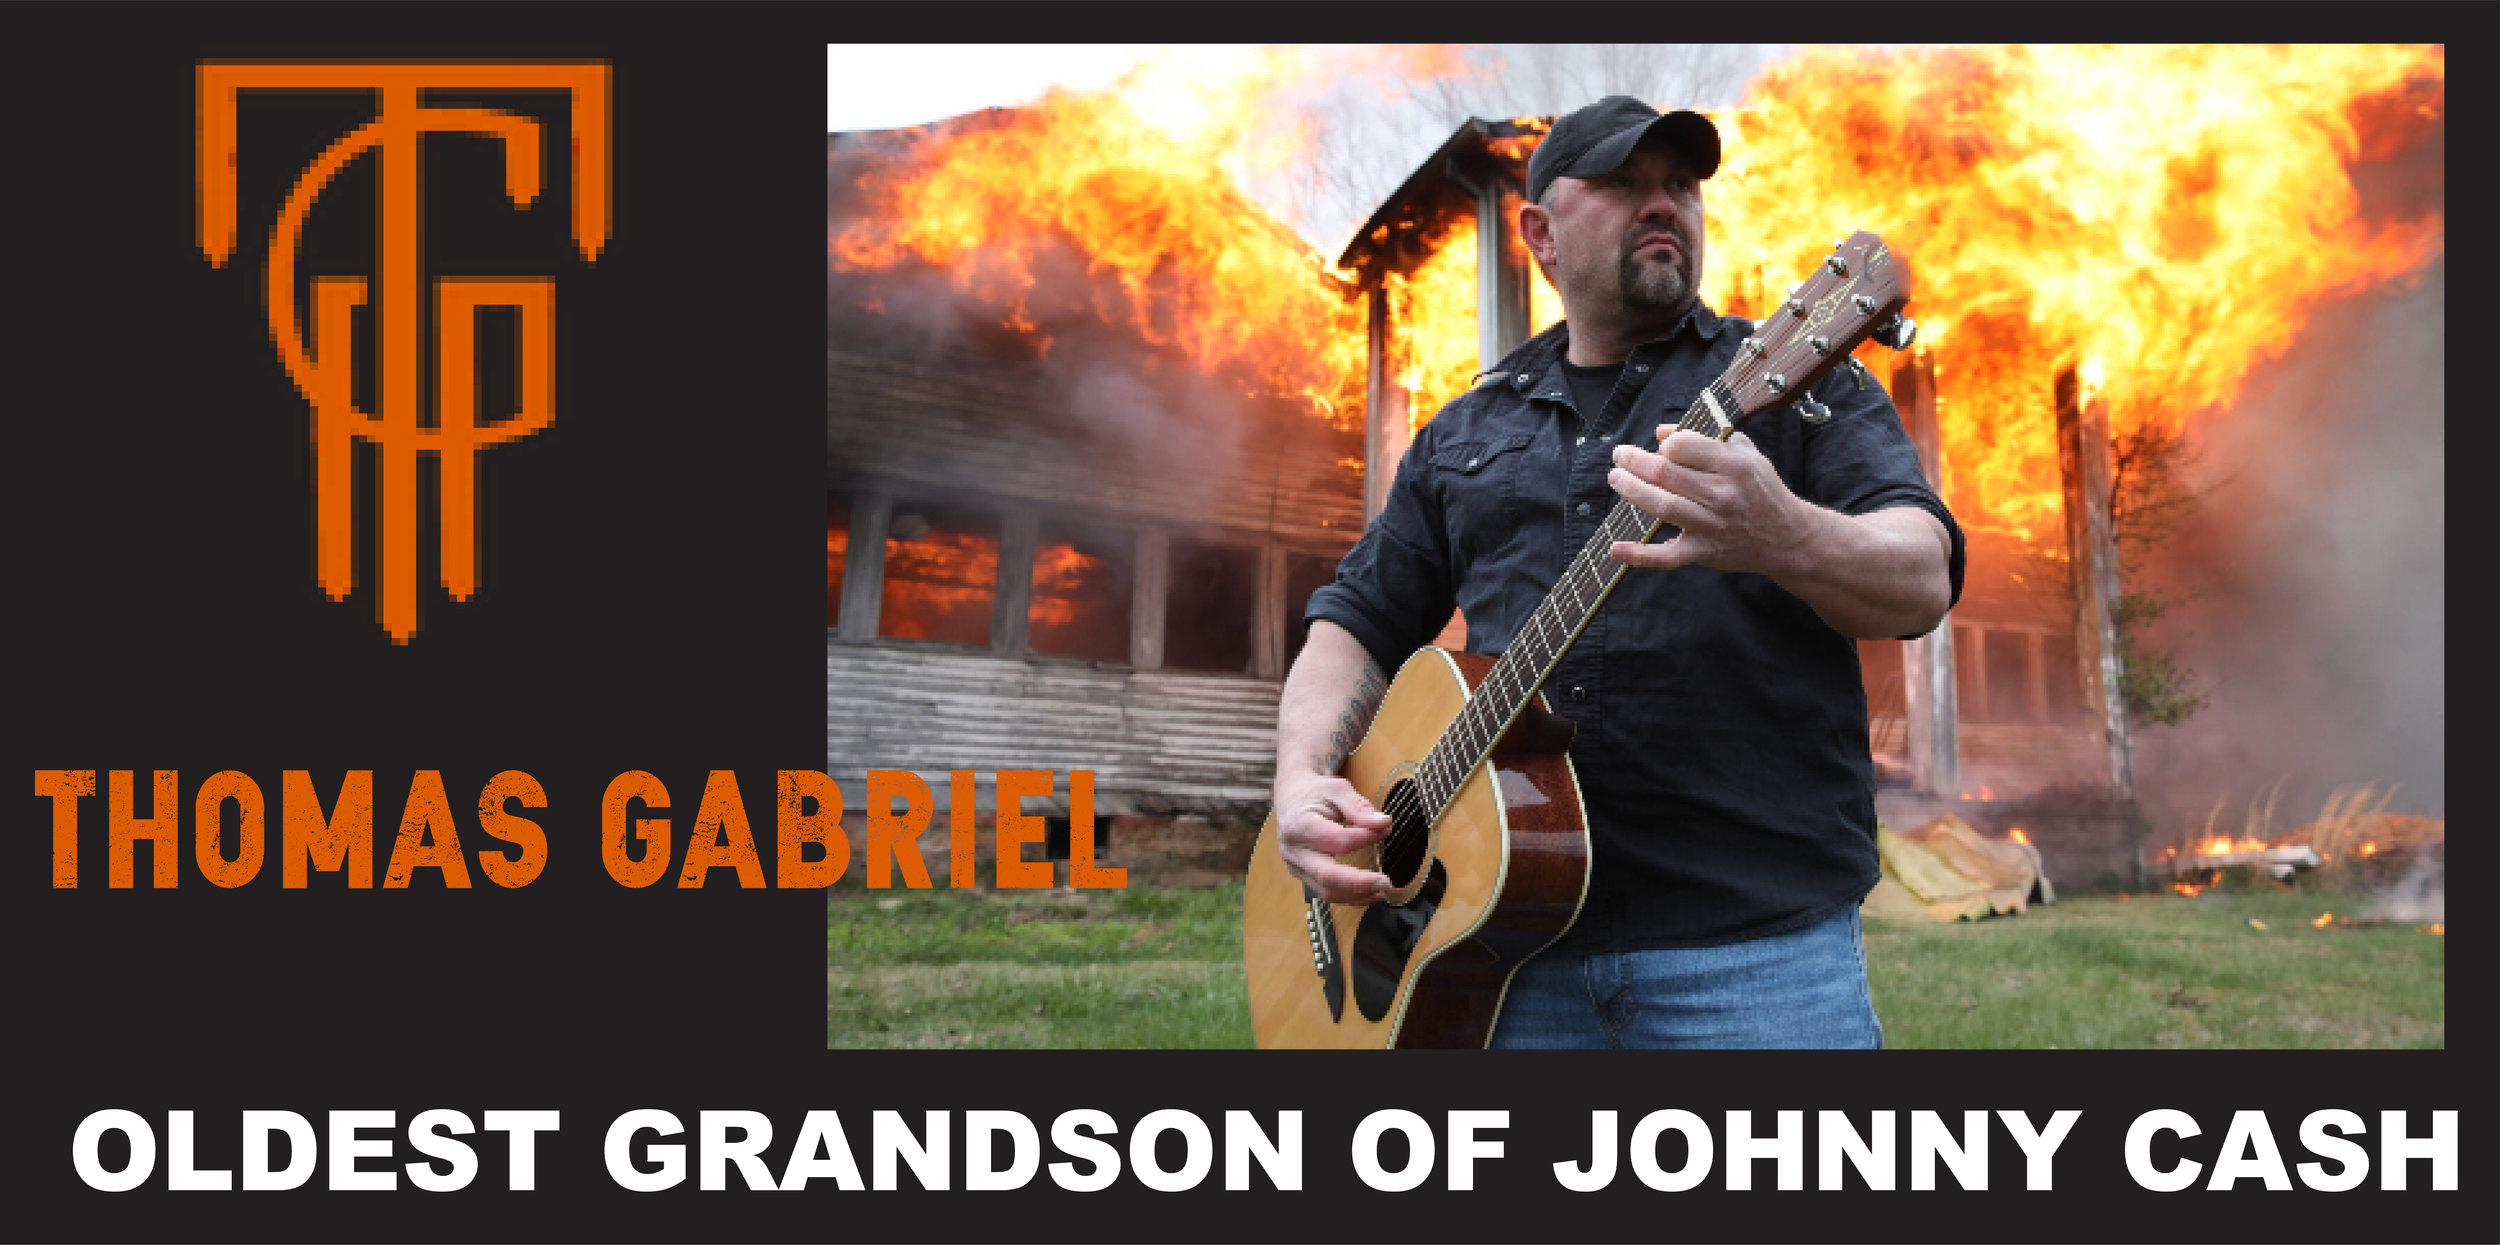 The oldest Grandson of the legendary Jonny Cash will be bringing his sound to the Warehouse stage!   Tickets go on sale for this can't miss show 3/20